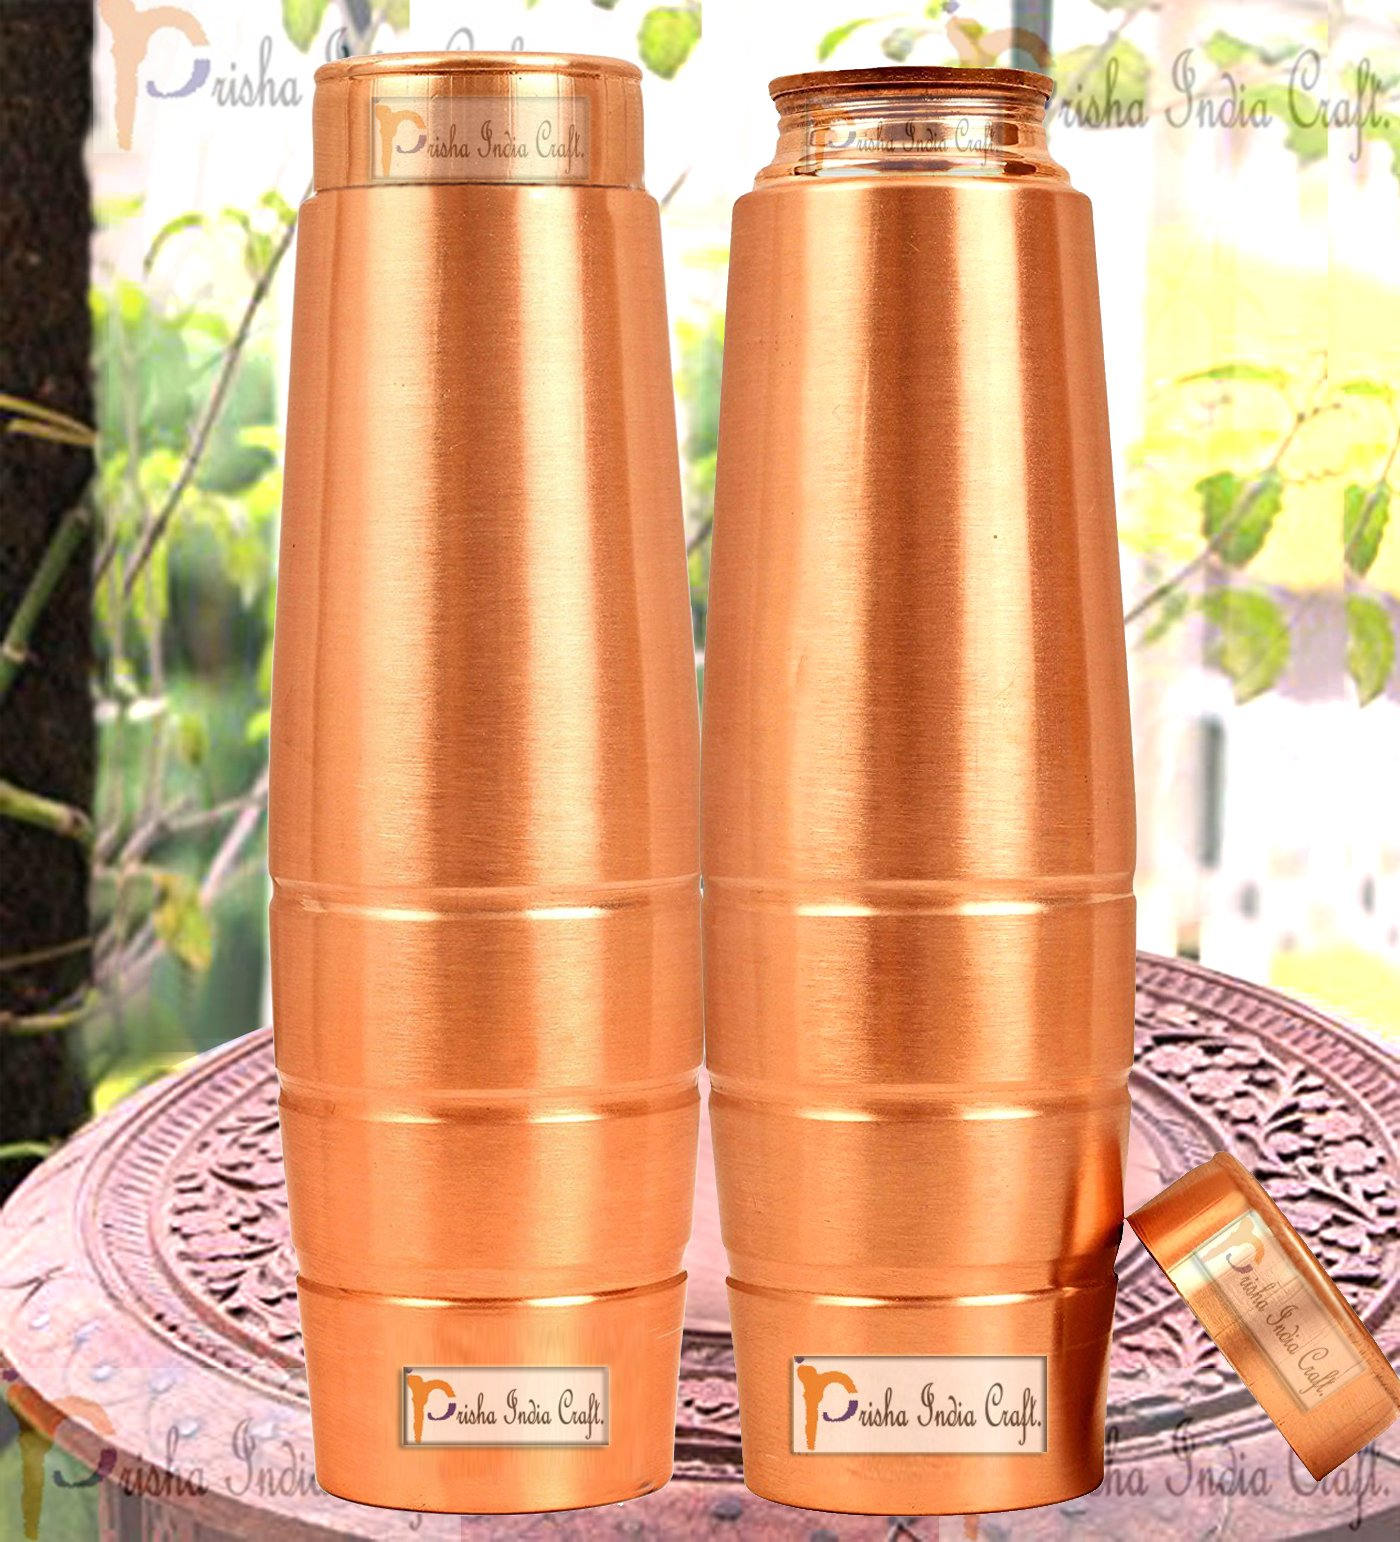 Prisha India Craft New Design Stylish Copper Bottle with Grip, Storage & Travelling Purpose, Yoga Ayurveda Healing, 1000 ML | Set of 2